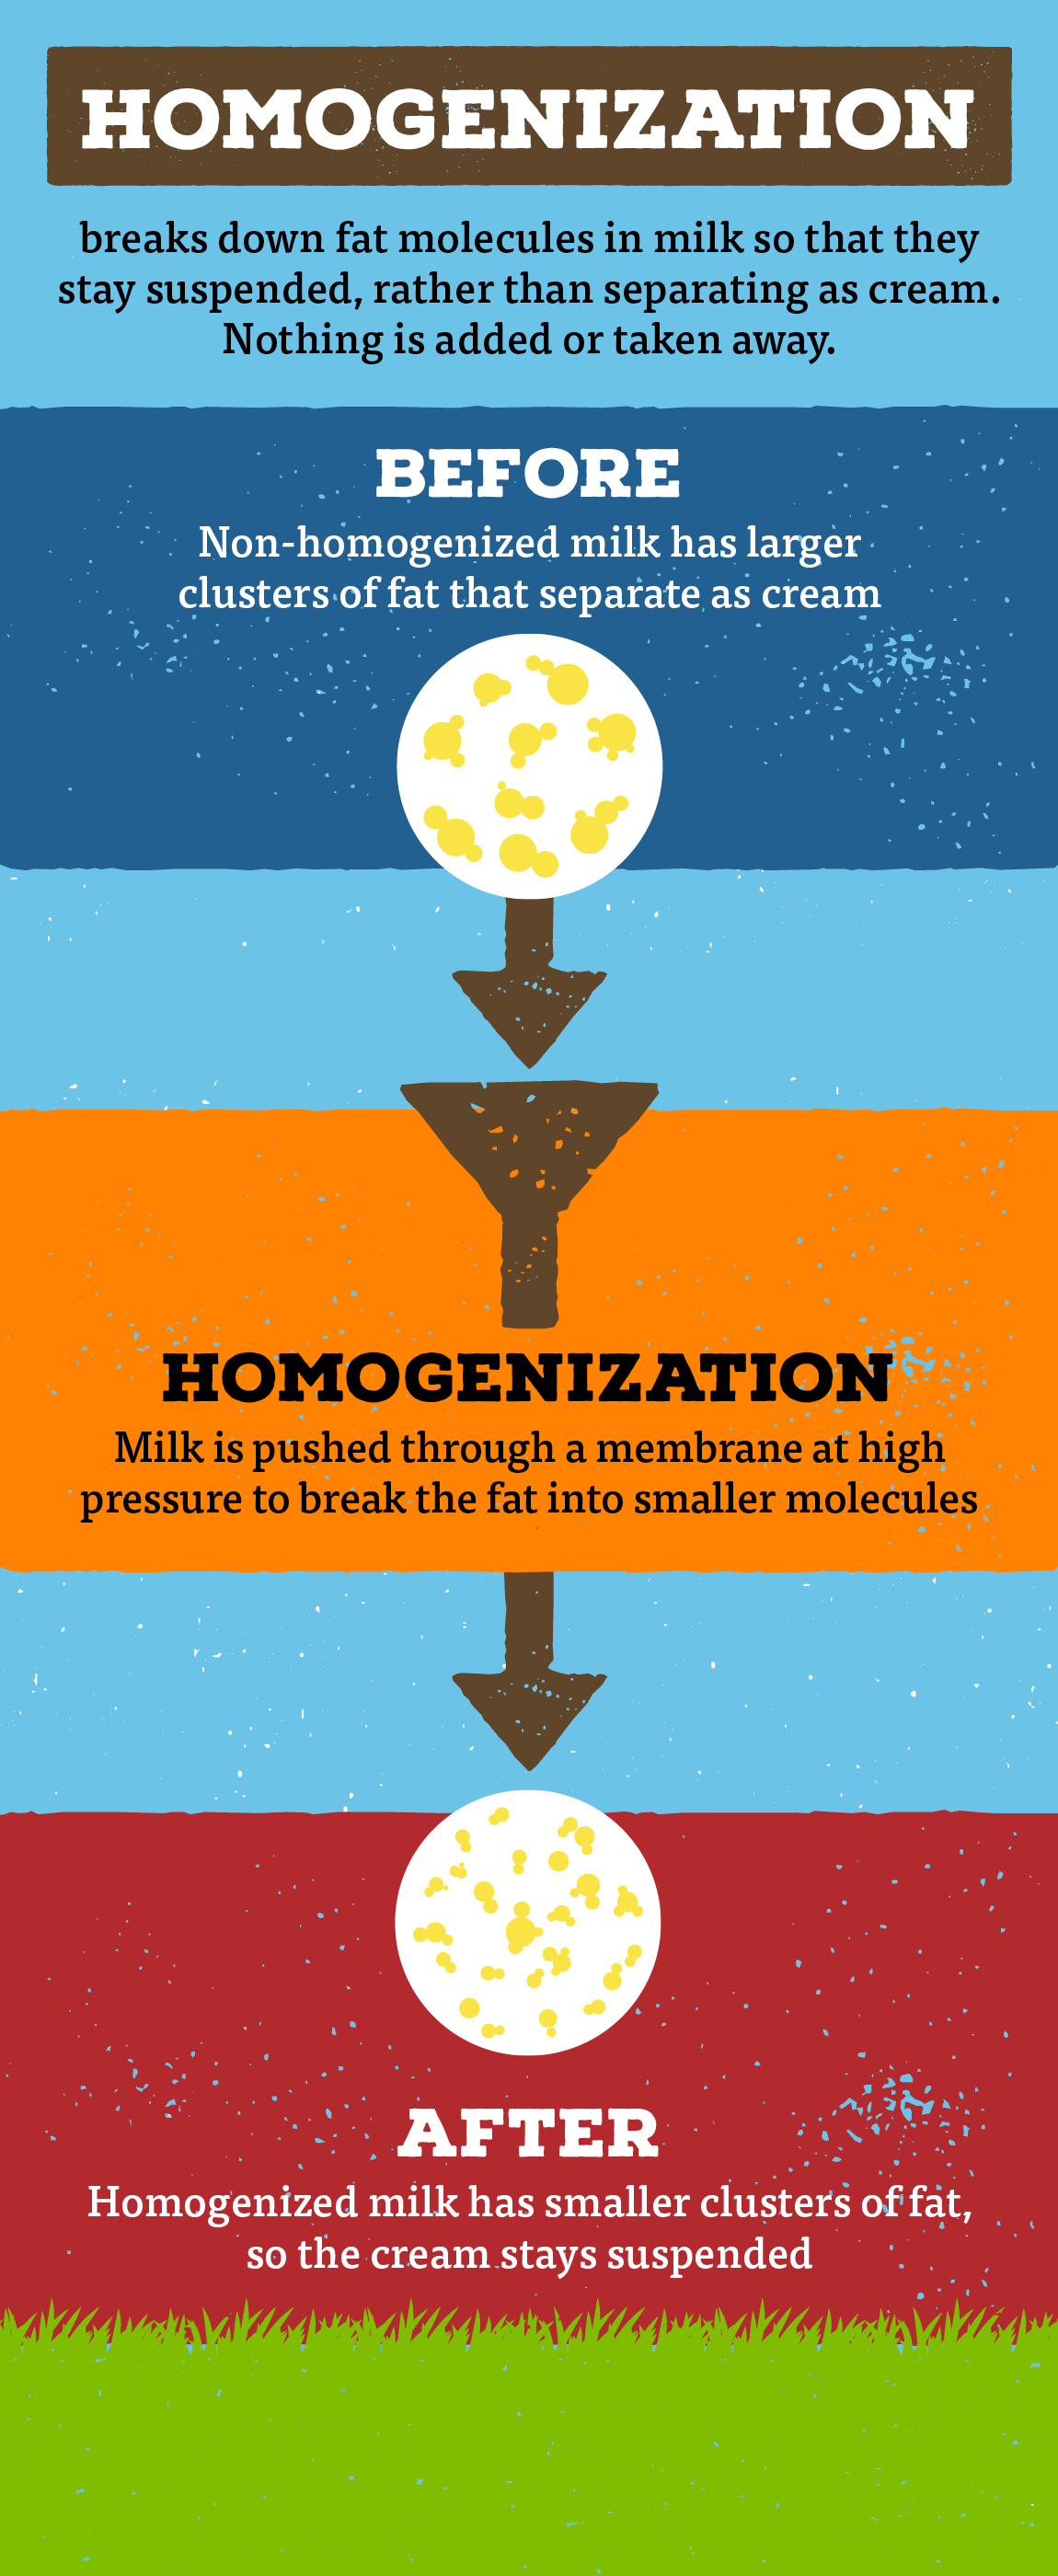 This infographic illustrates how homogenization splits up fat molecules so that they are suspended in the milk and will no longer rise to the top.